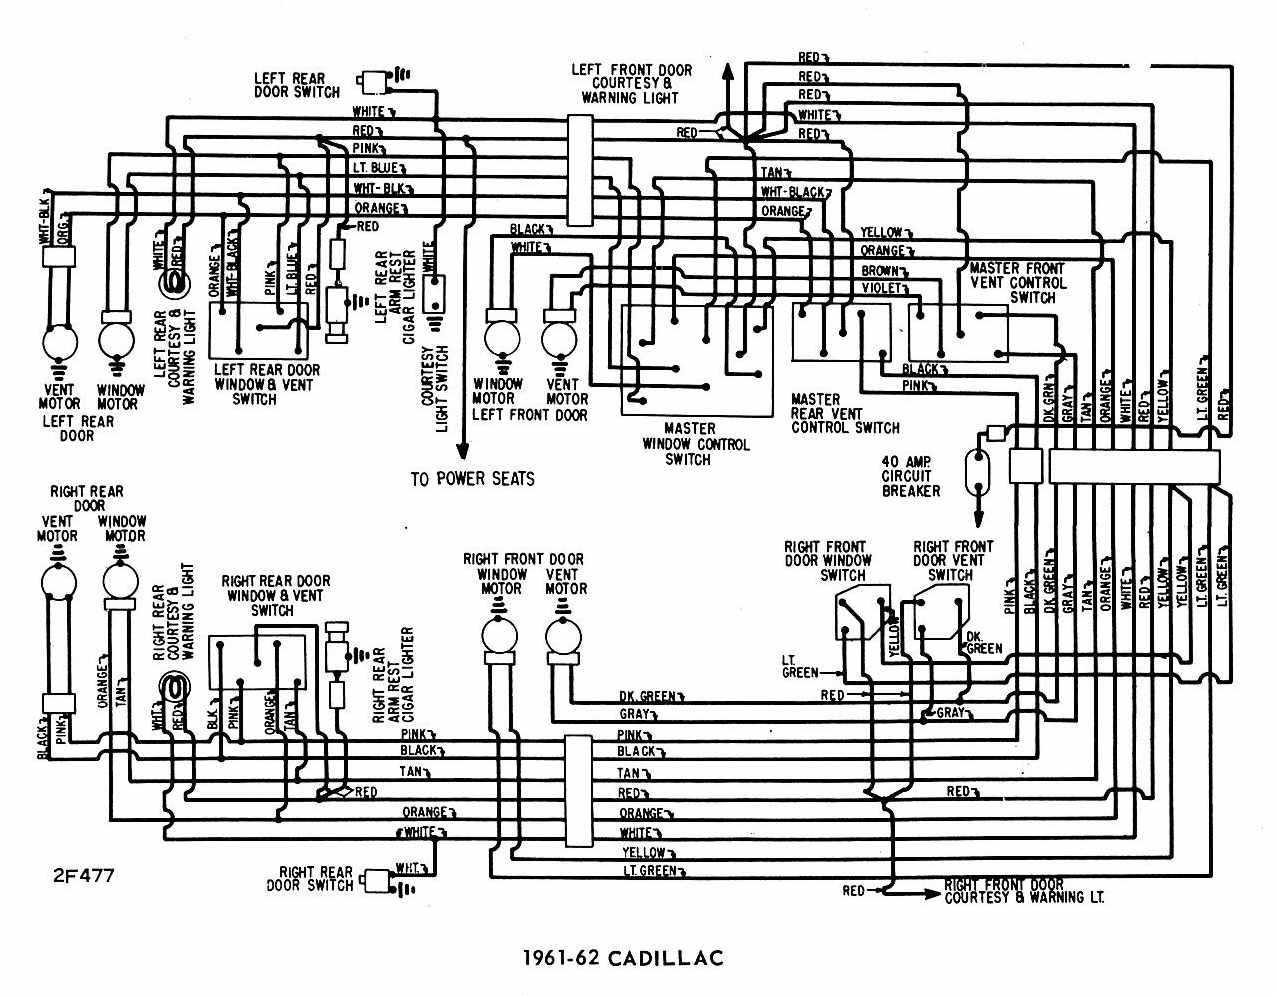 62 gmc wiring diagram free download schematic wiring diagrams tracor 8n ford tractor wiring diagram